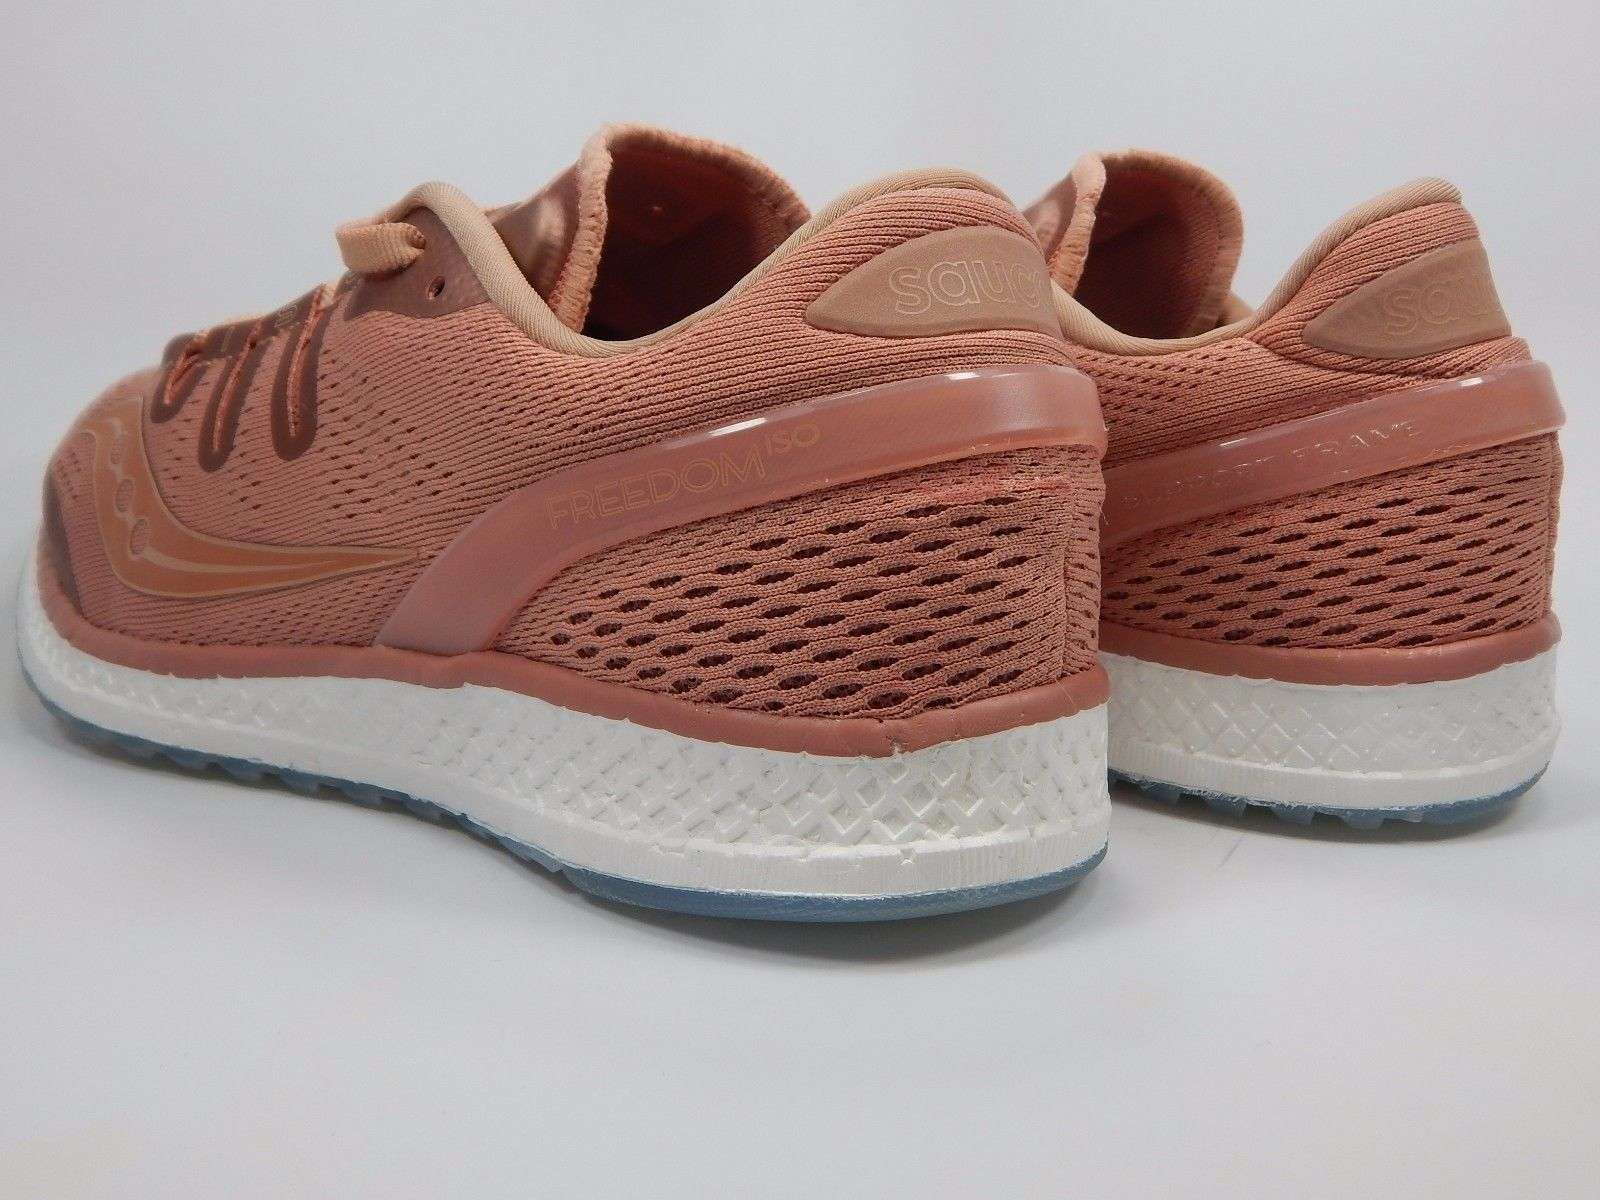 Saucony Freedom ISO Men's Running Shoes Size US 9 M (D) EU 42.5 Salmon S20355-52